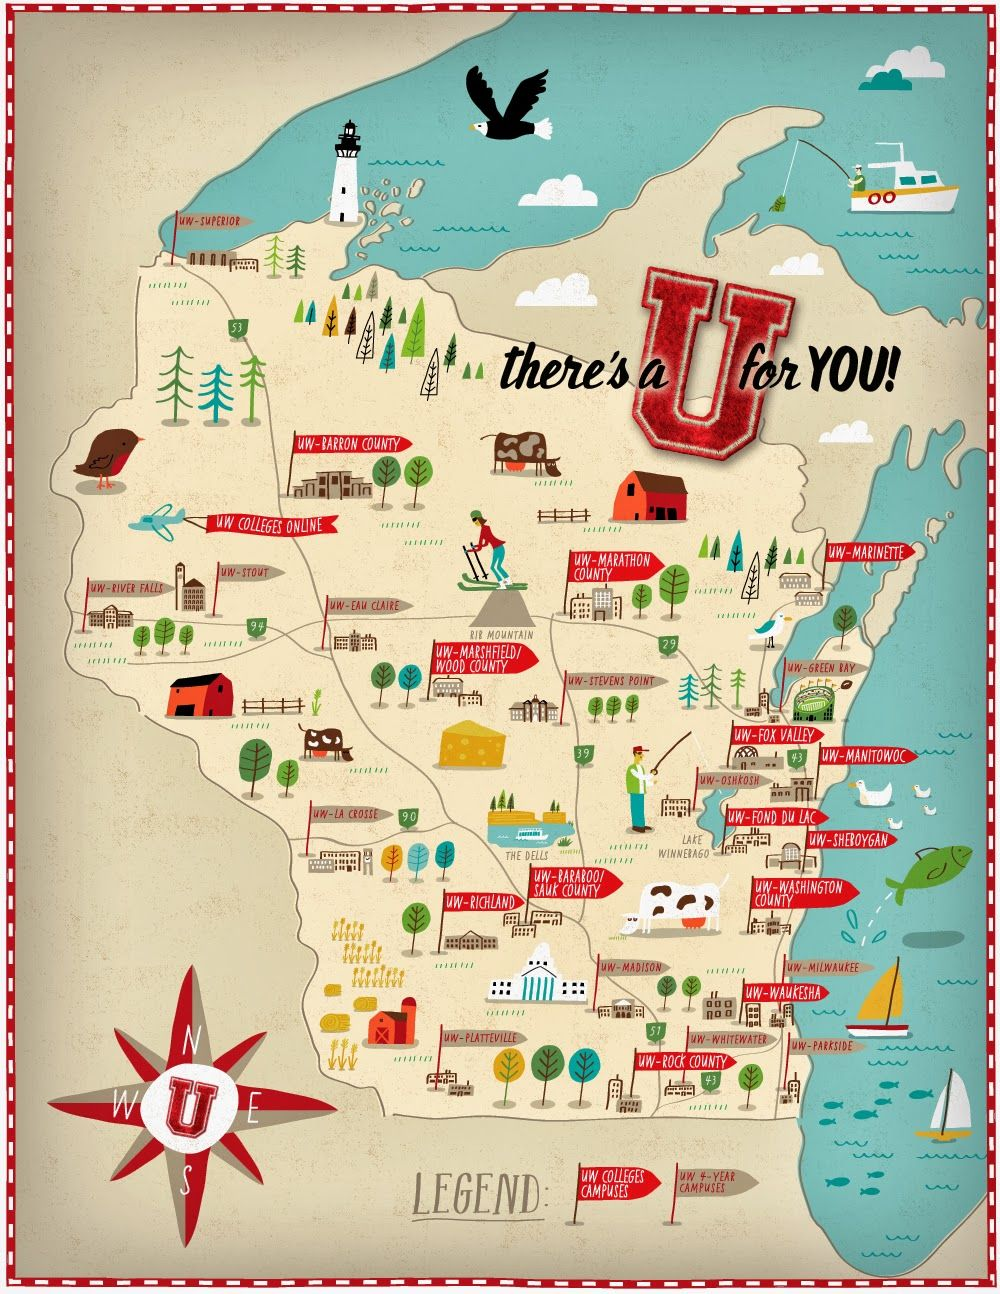 Campus Locator Map For University Of Wisconsin Map Illustration